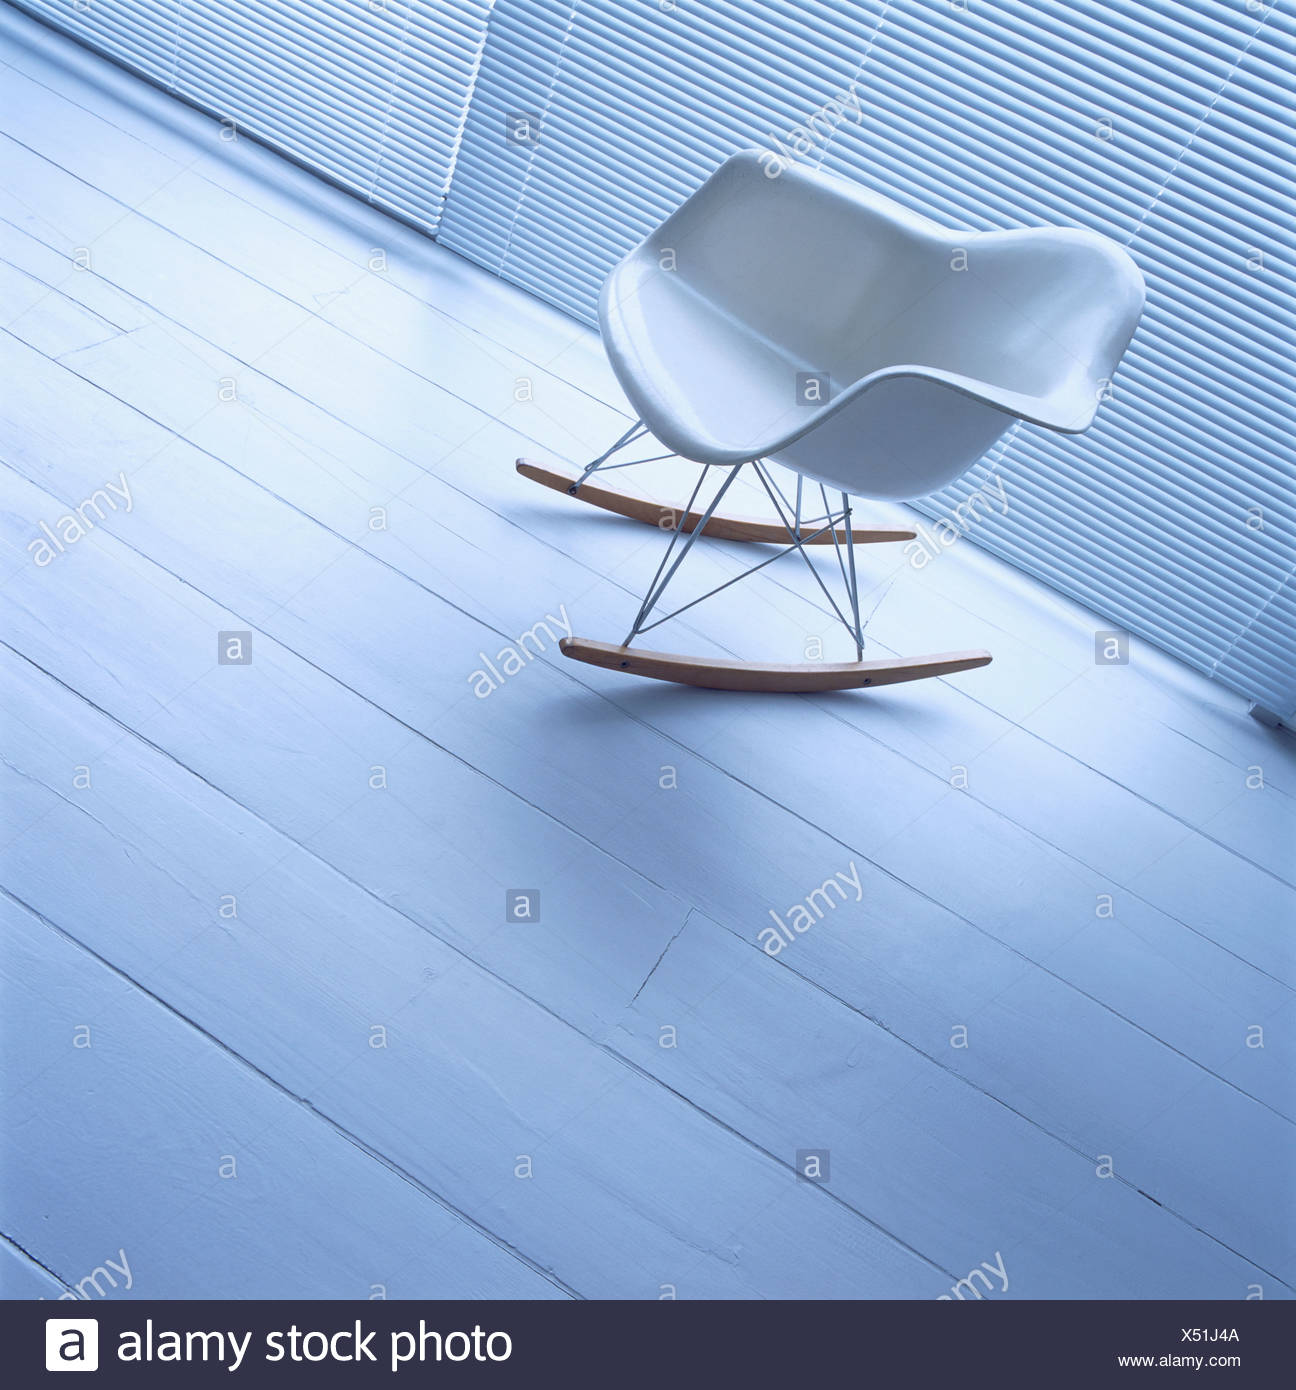 Close Up Of White Charles Eames Rocking Chair On Wooden Flooring   Stock  Image